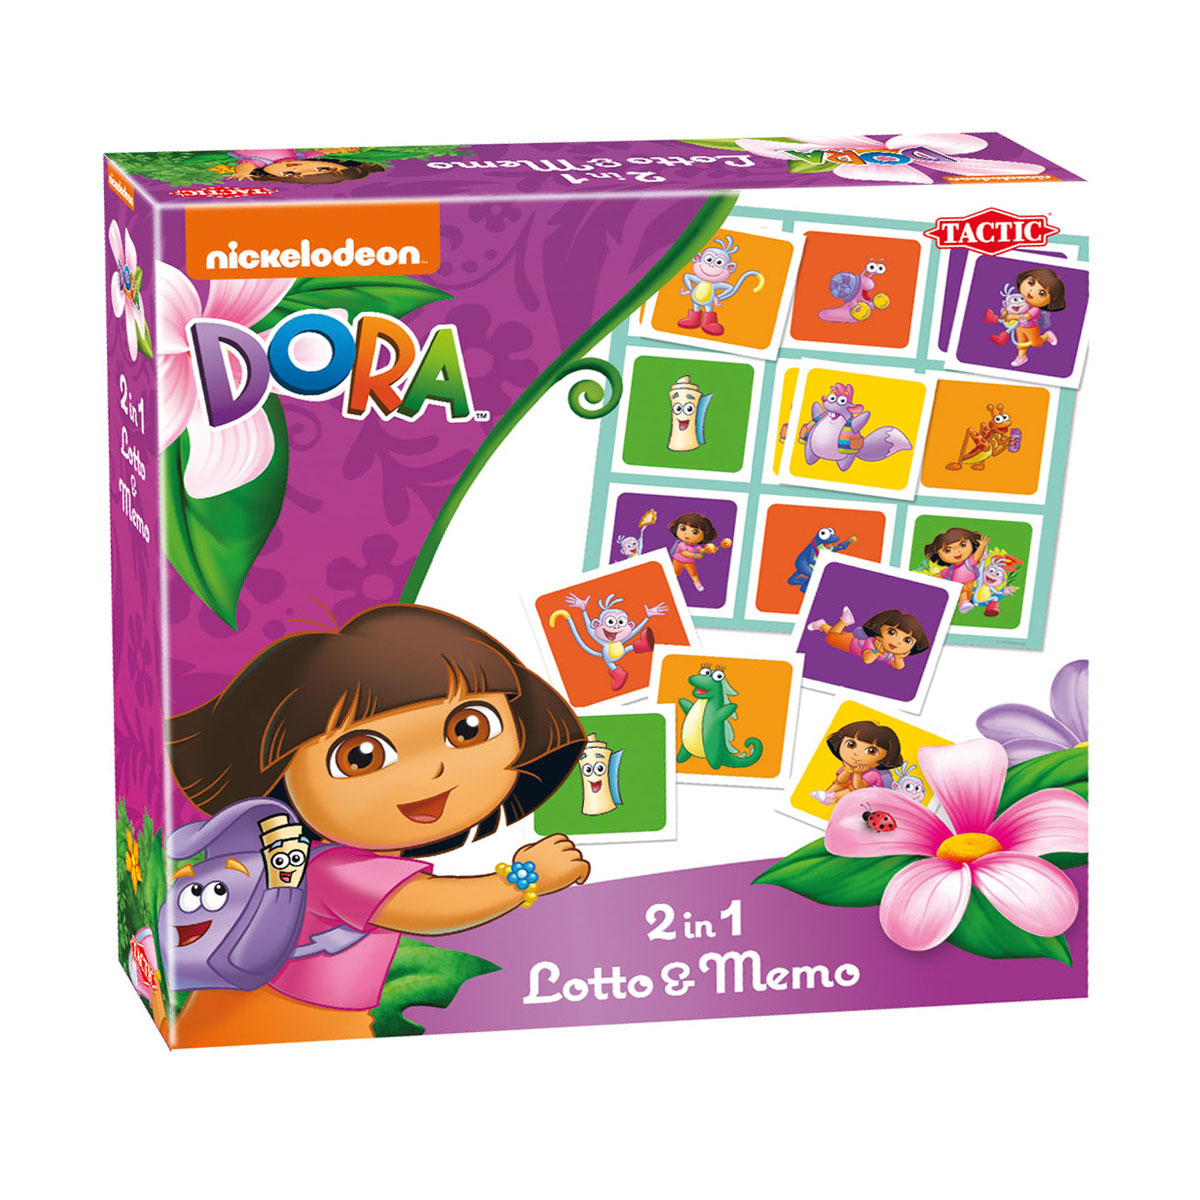 Dora Lotto & Memo, 2in1